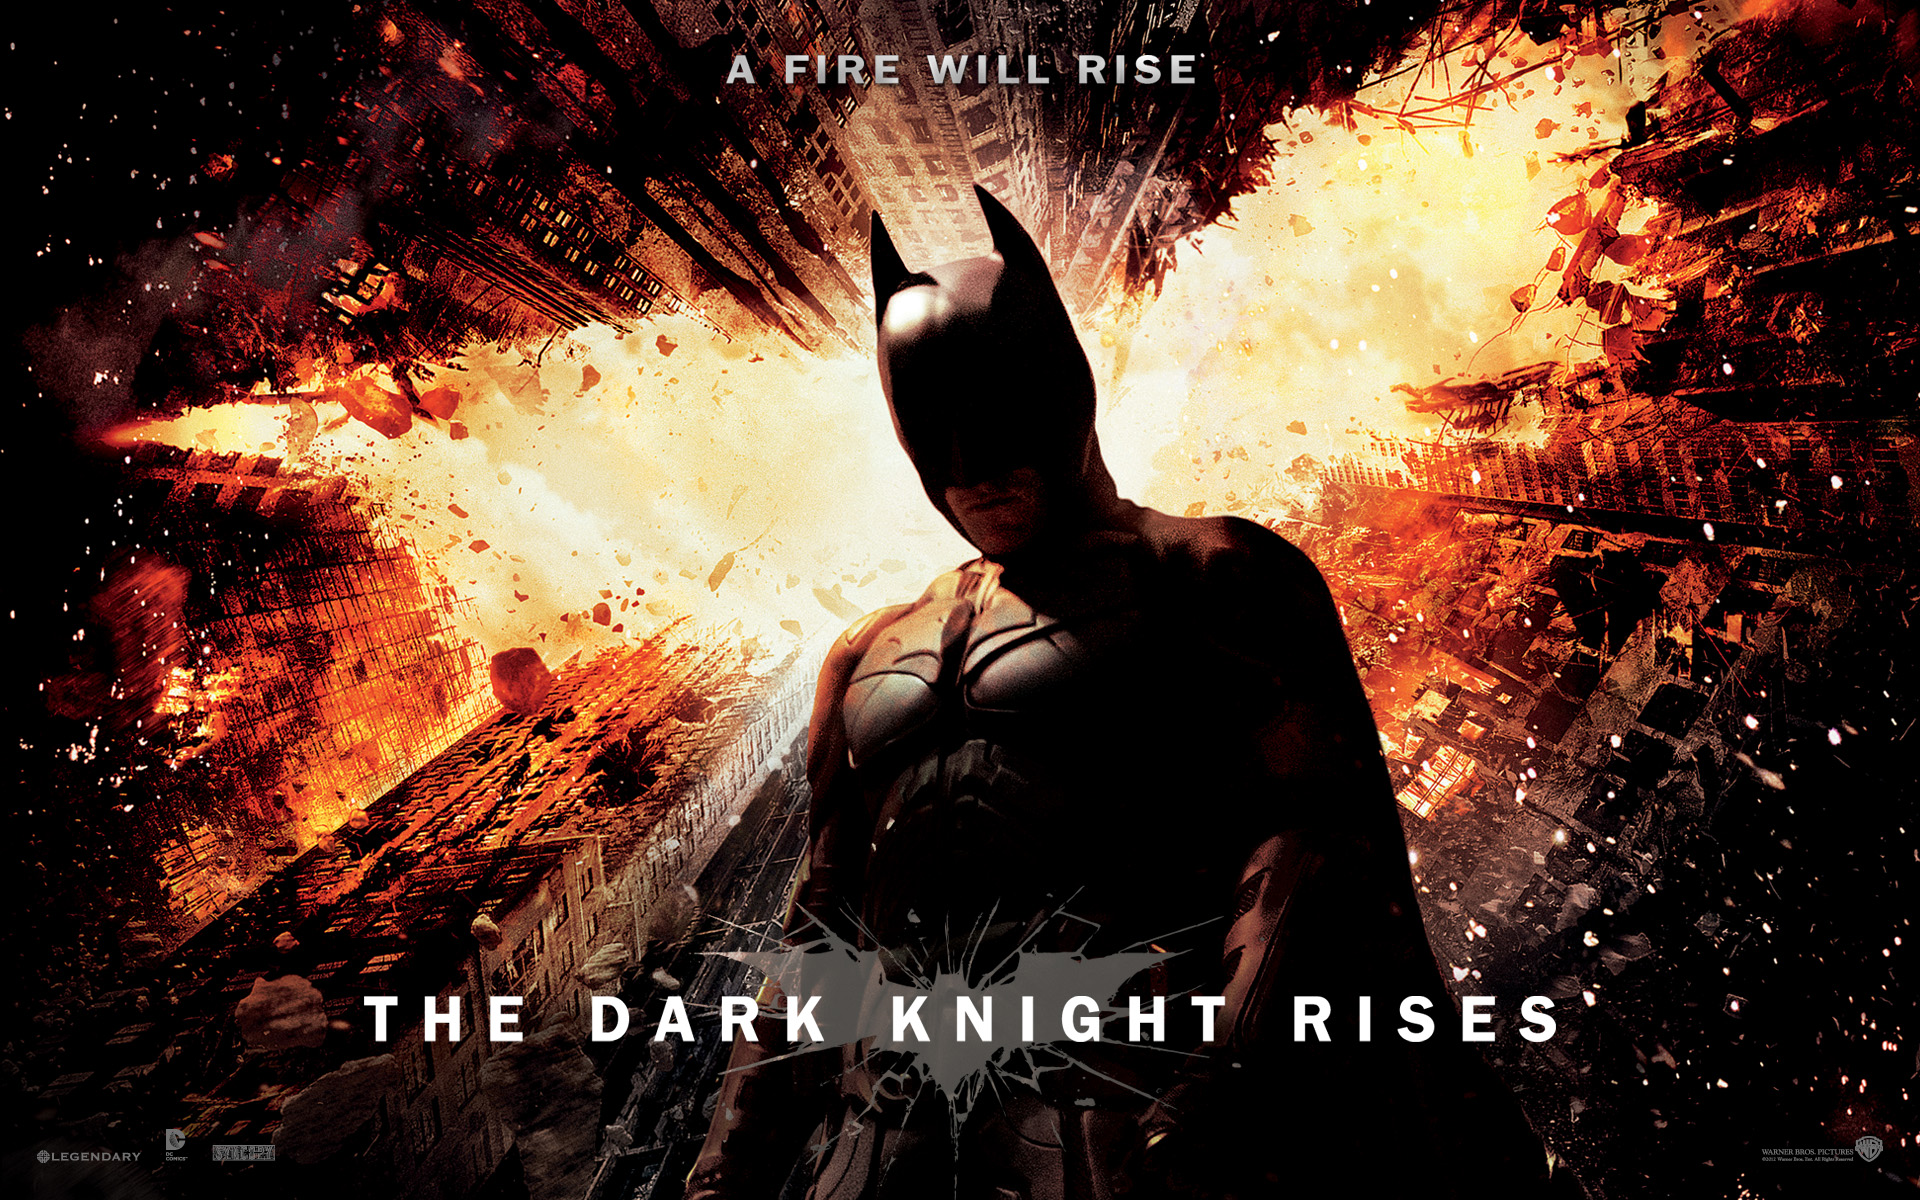 Filmkritik: The Dark Knight Rises